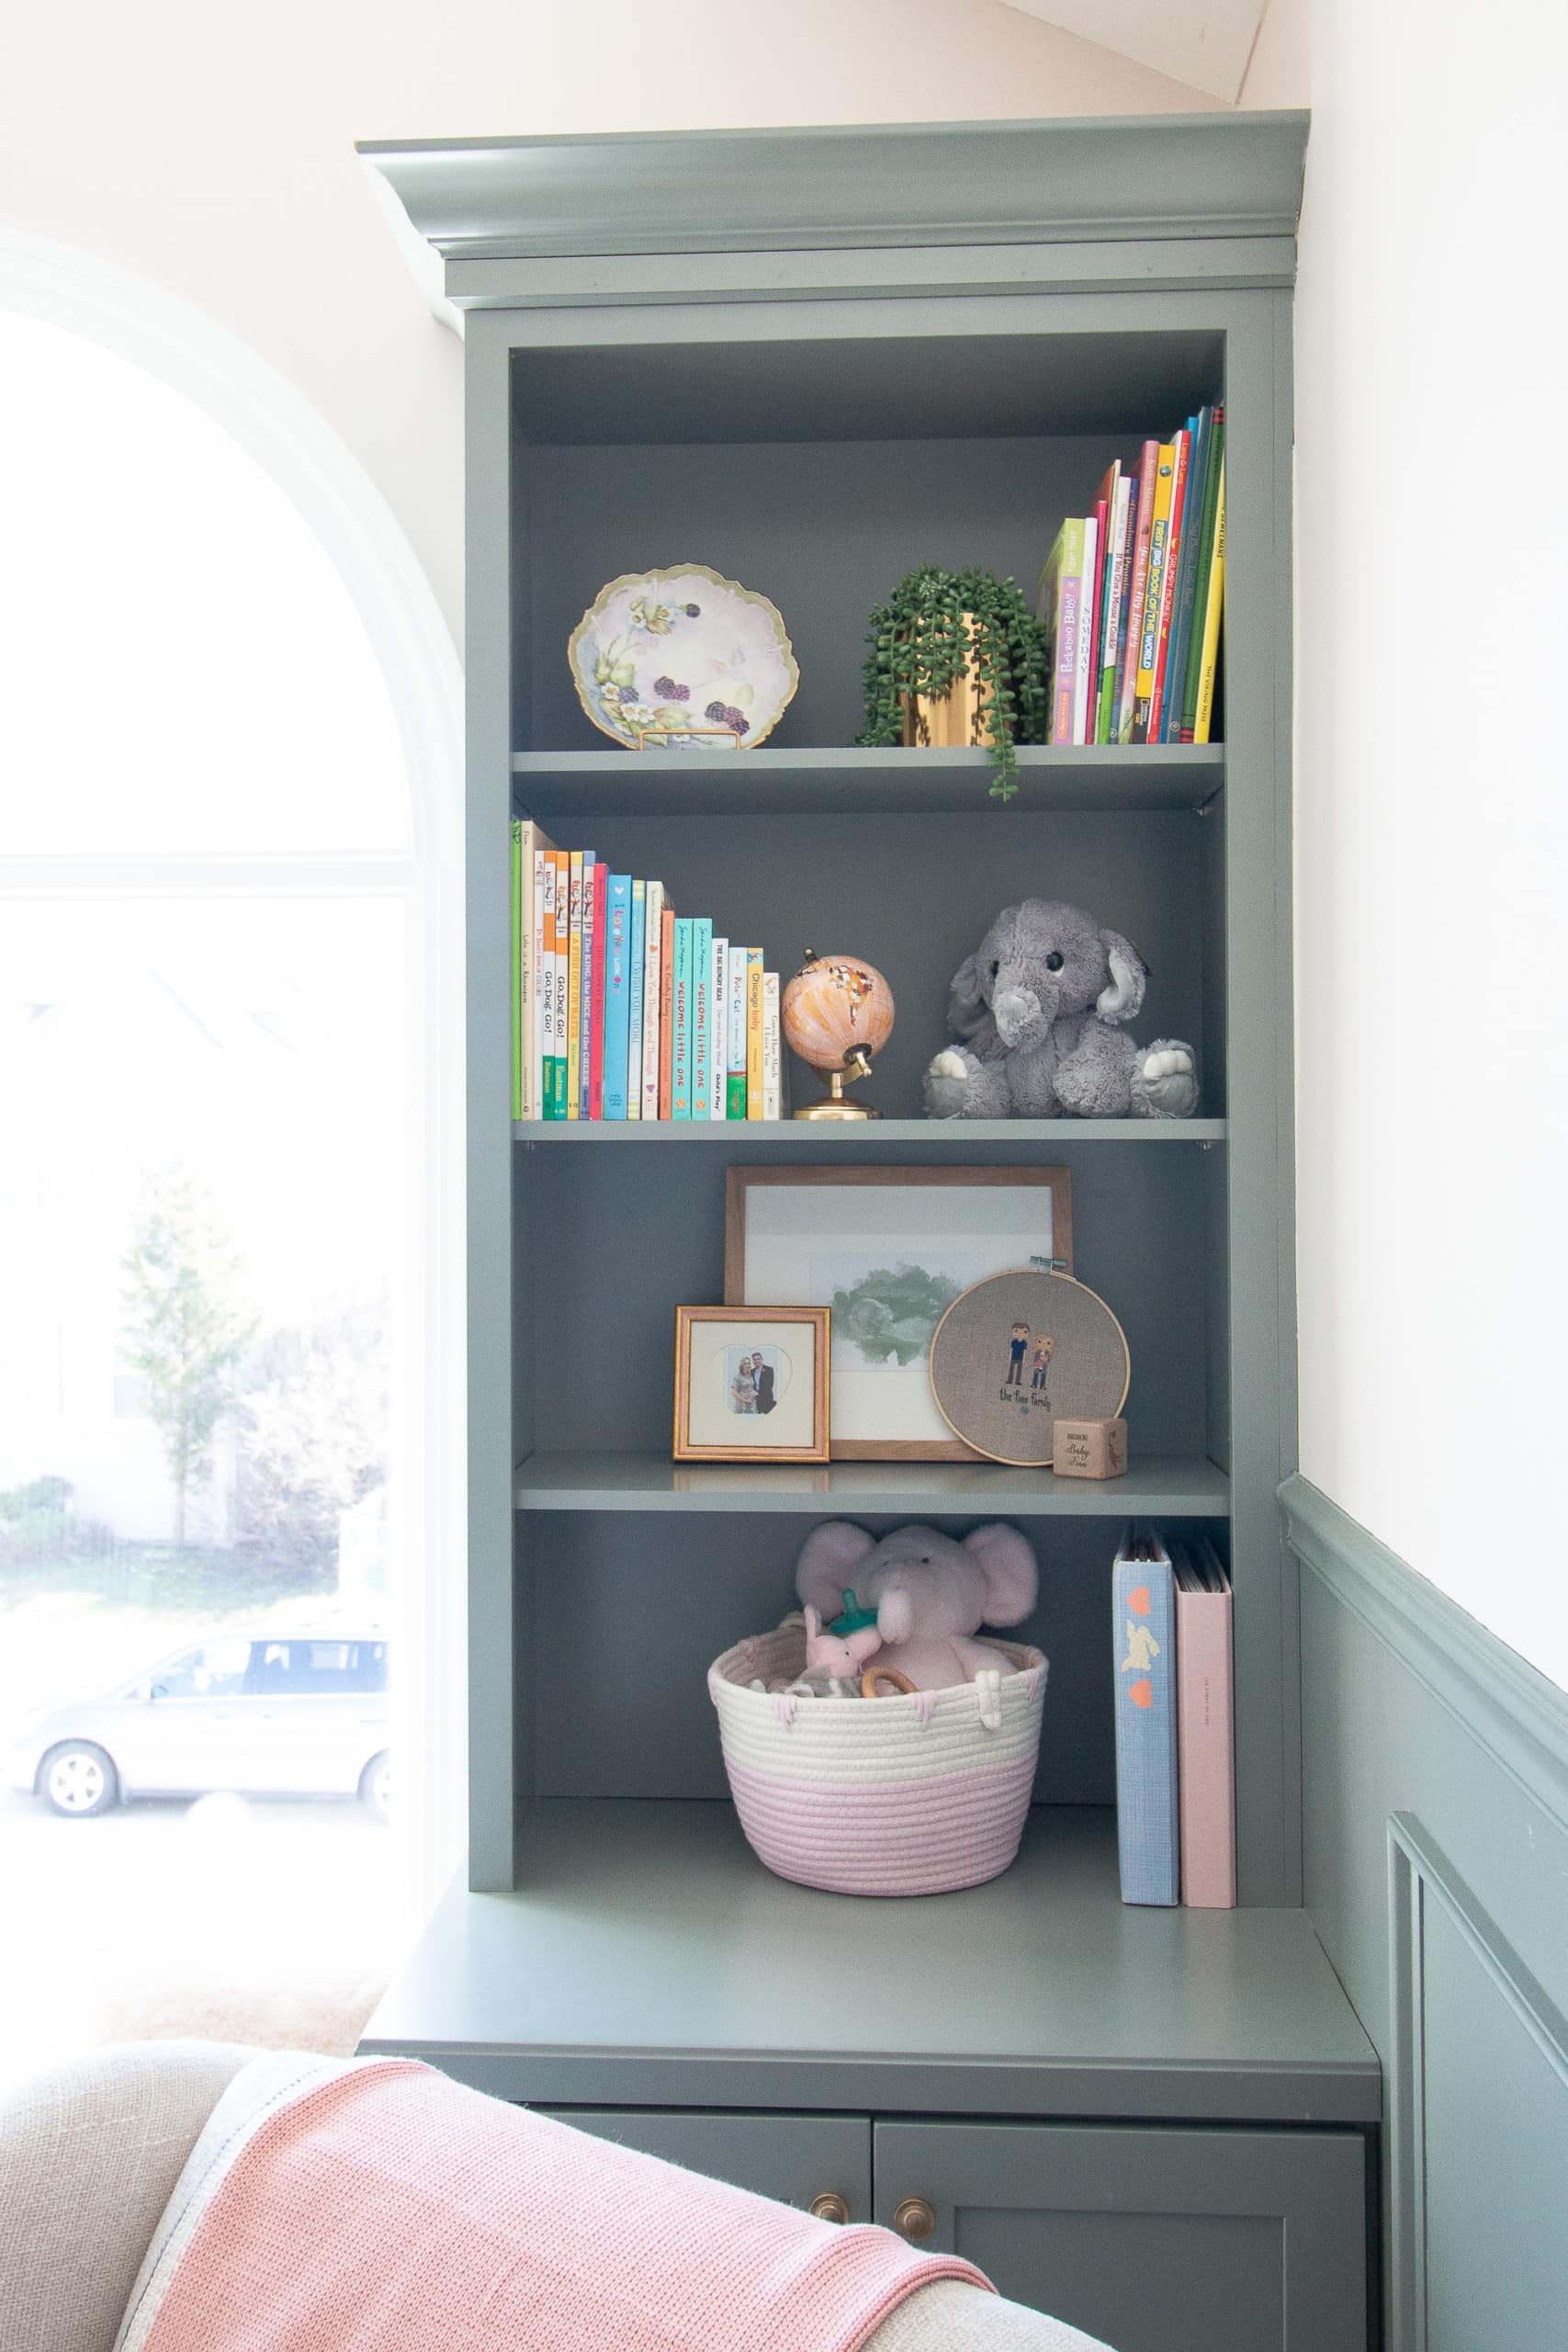 The nursery built-ins